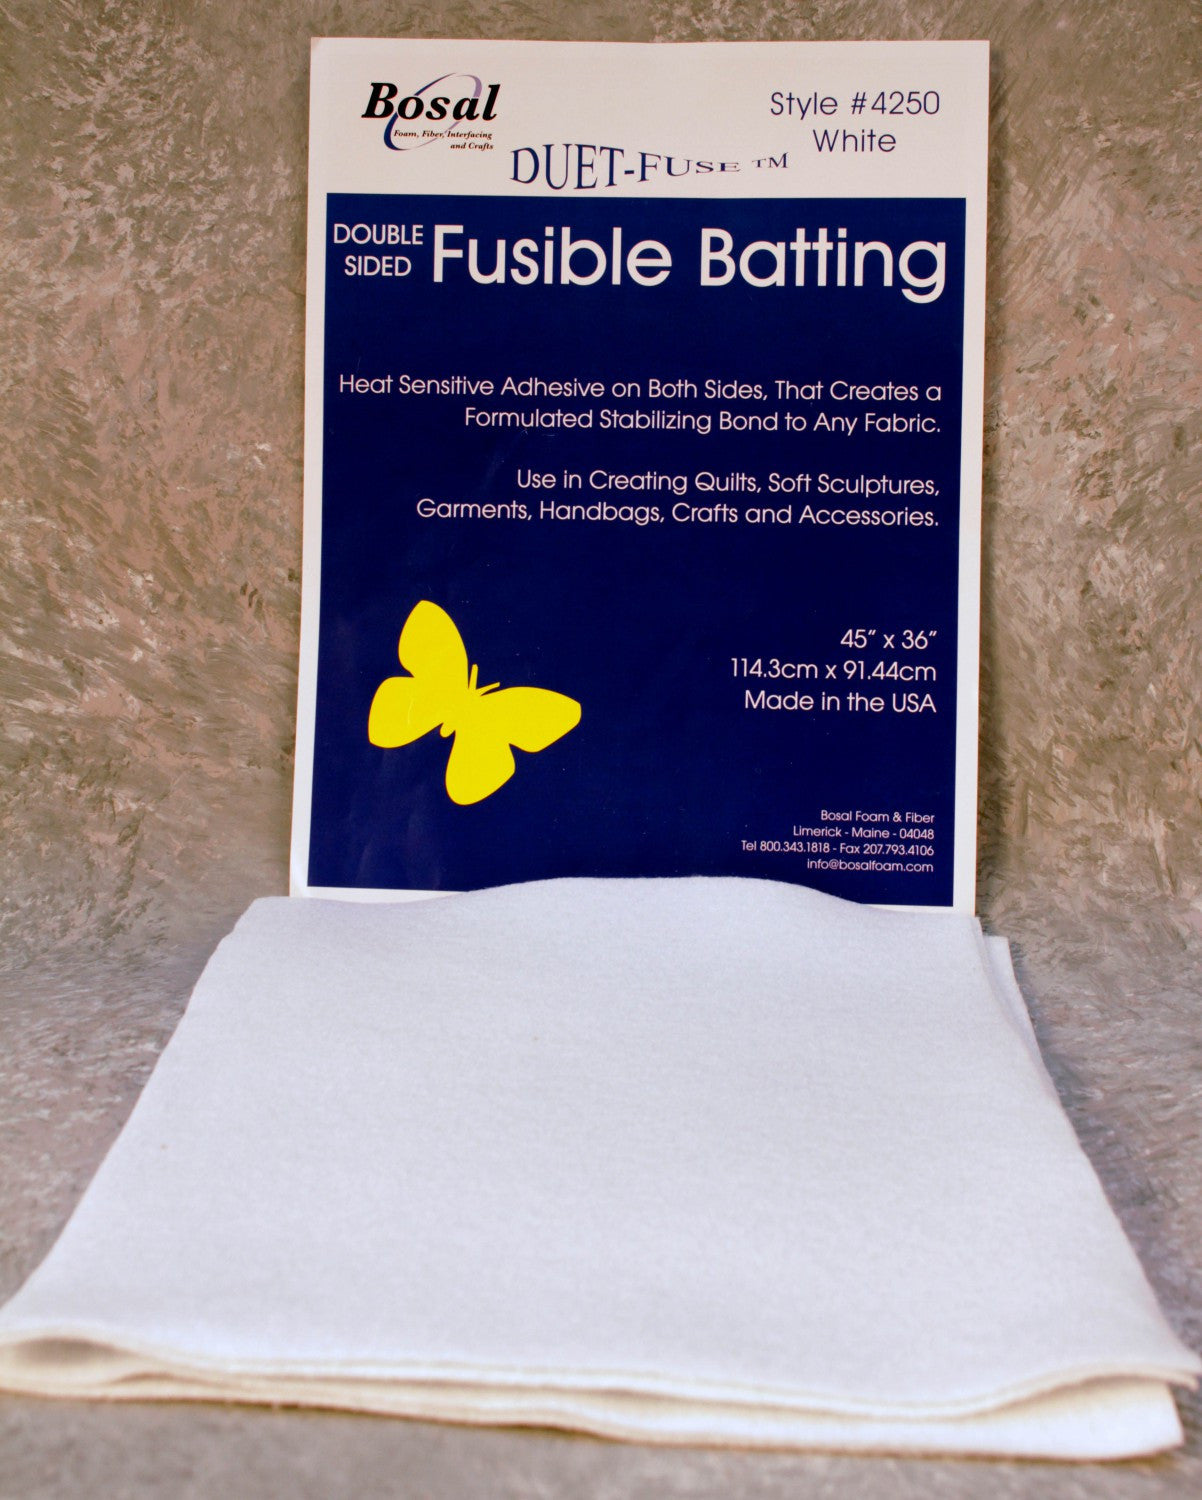 Duet-Fuse Double Sided Fusible Batting